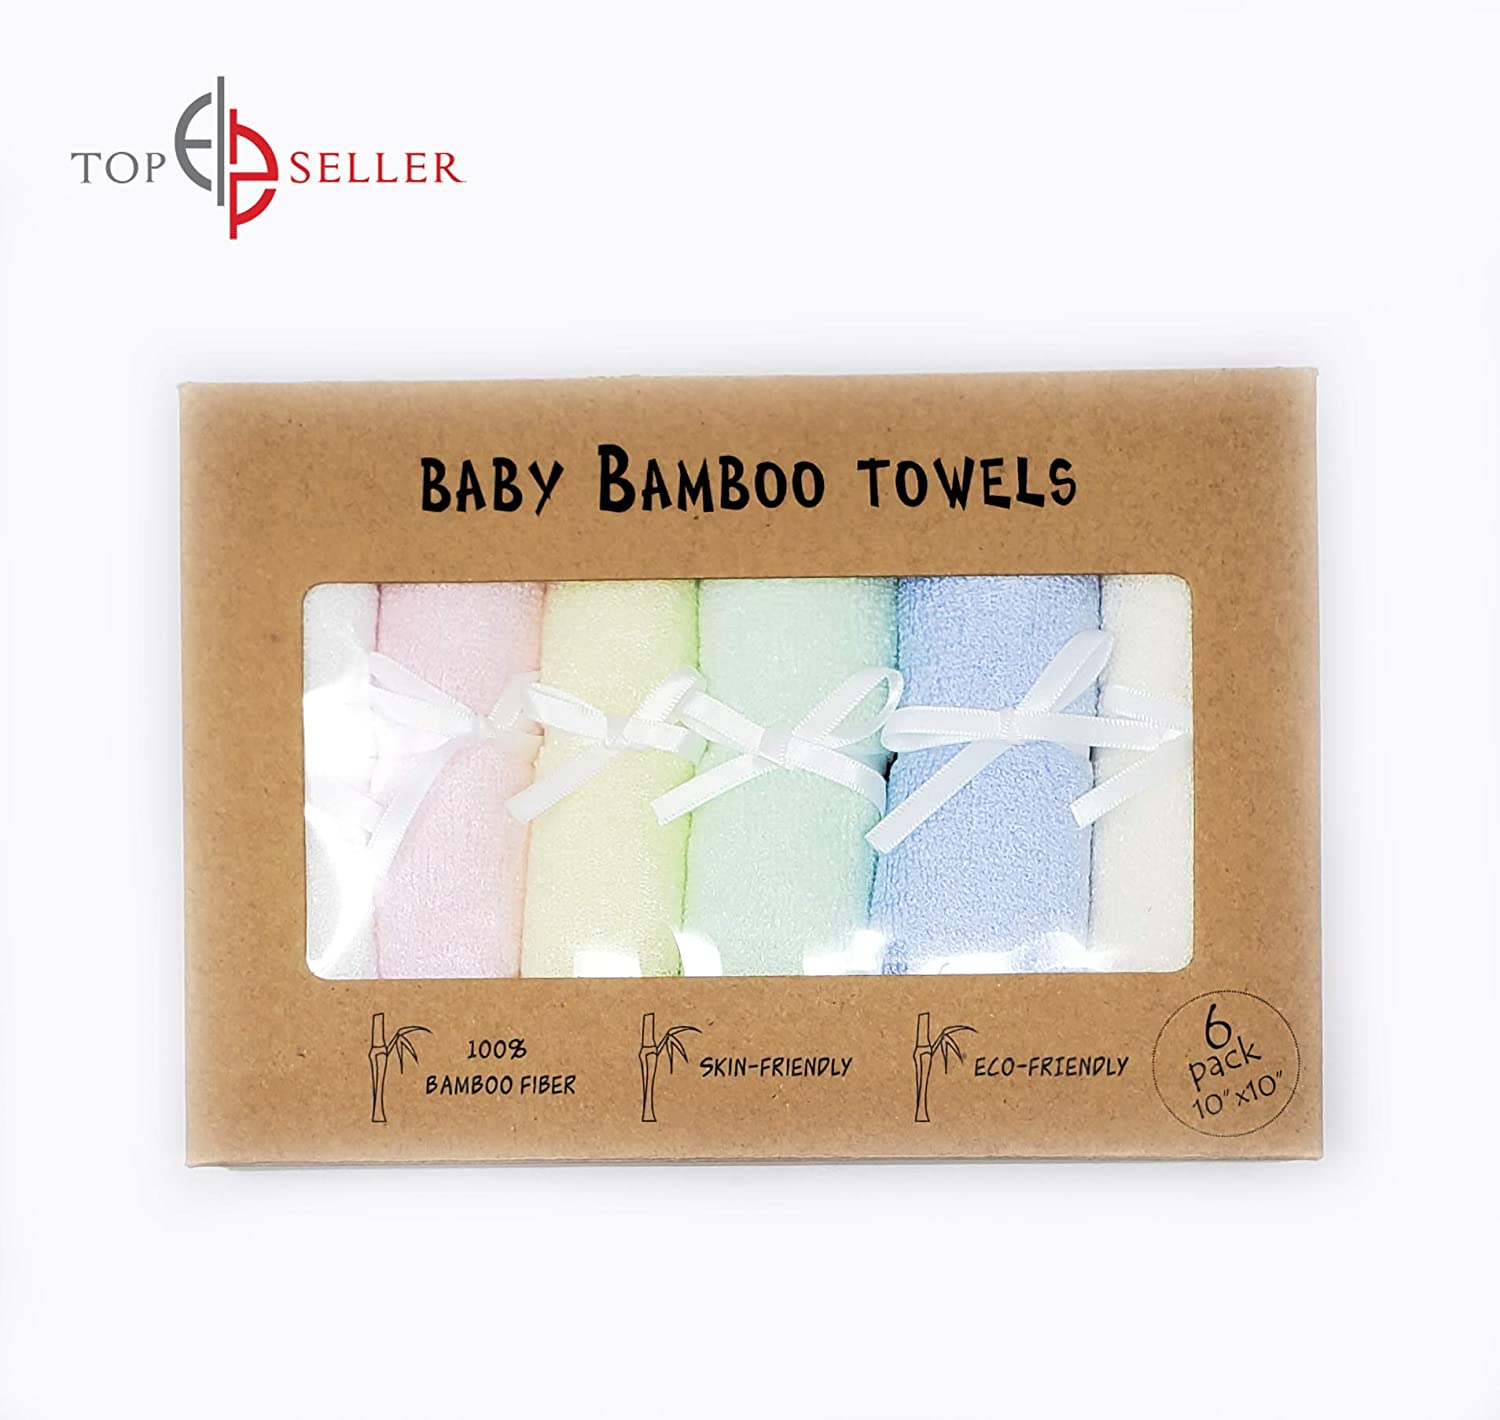 2 Layers of Ultra Luxury /& Soft Absorbent Bamboo Towel Newborn Bath /& Face Towel Natural Reusable Baby Wipes for Sensitive Skin Worlds Best Baby Bamboo Washcloths /& Laundry Bag Set Multi